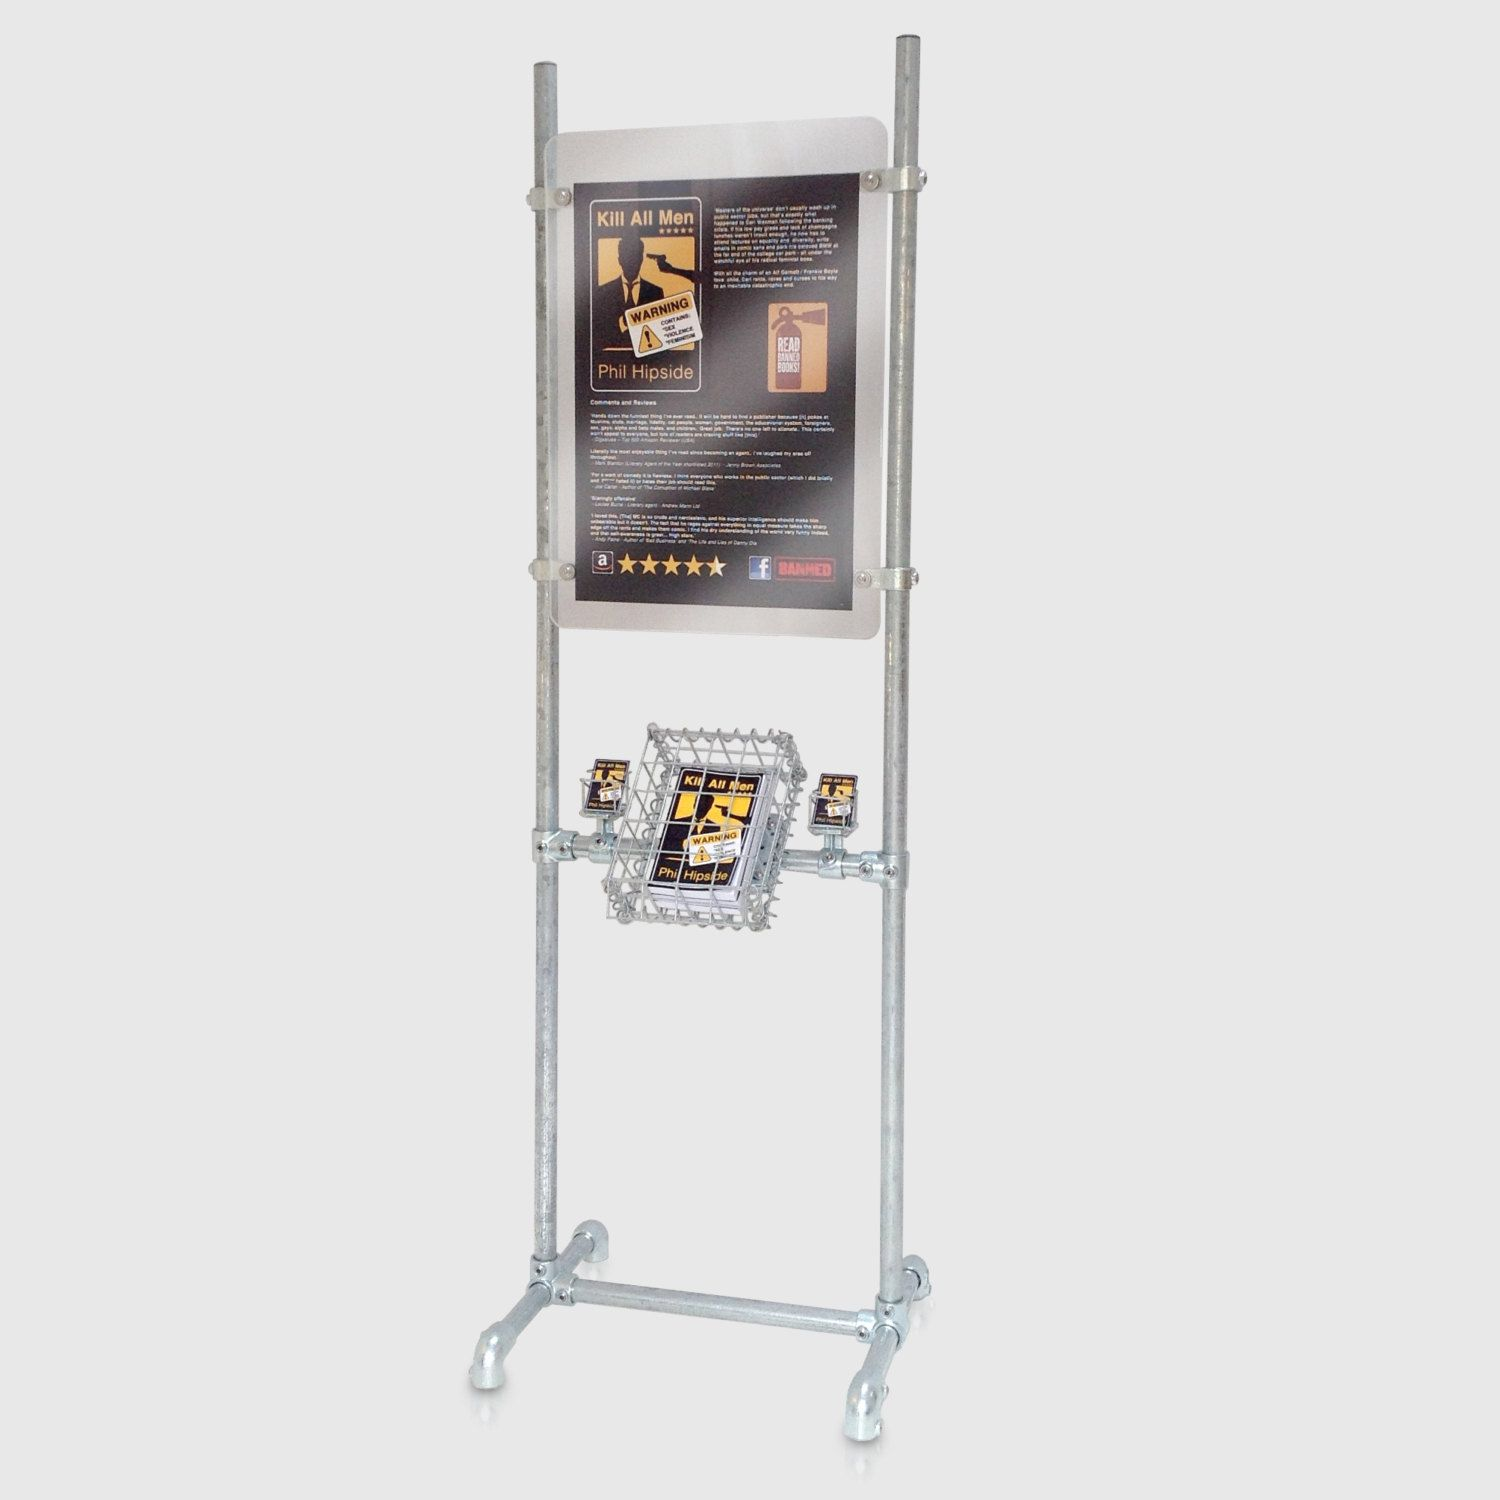 Exhibition Stand For Sale : Product display stand for trade show or shop with poster